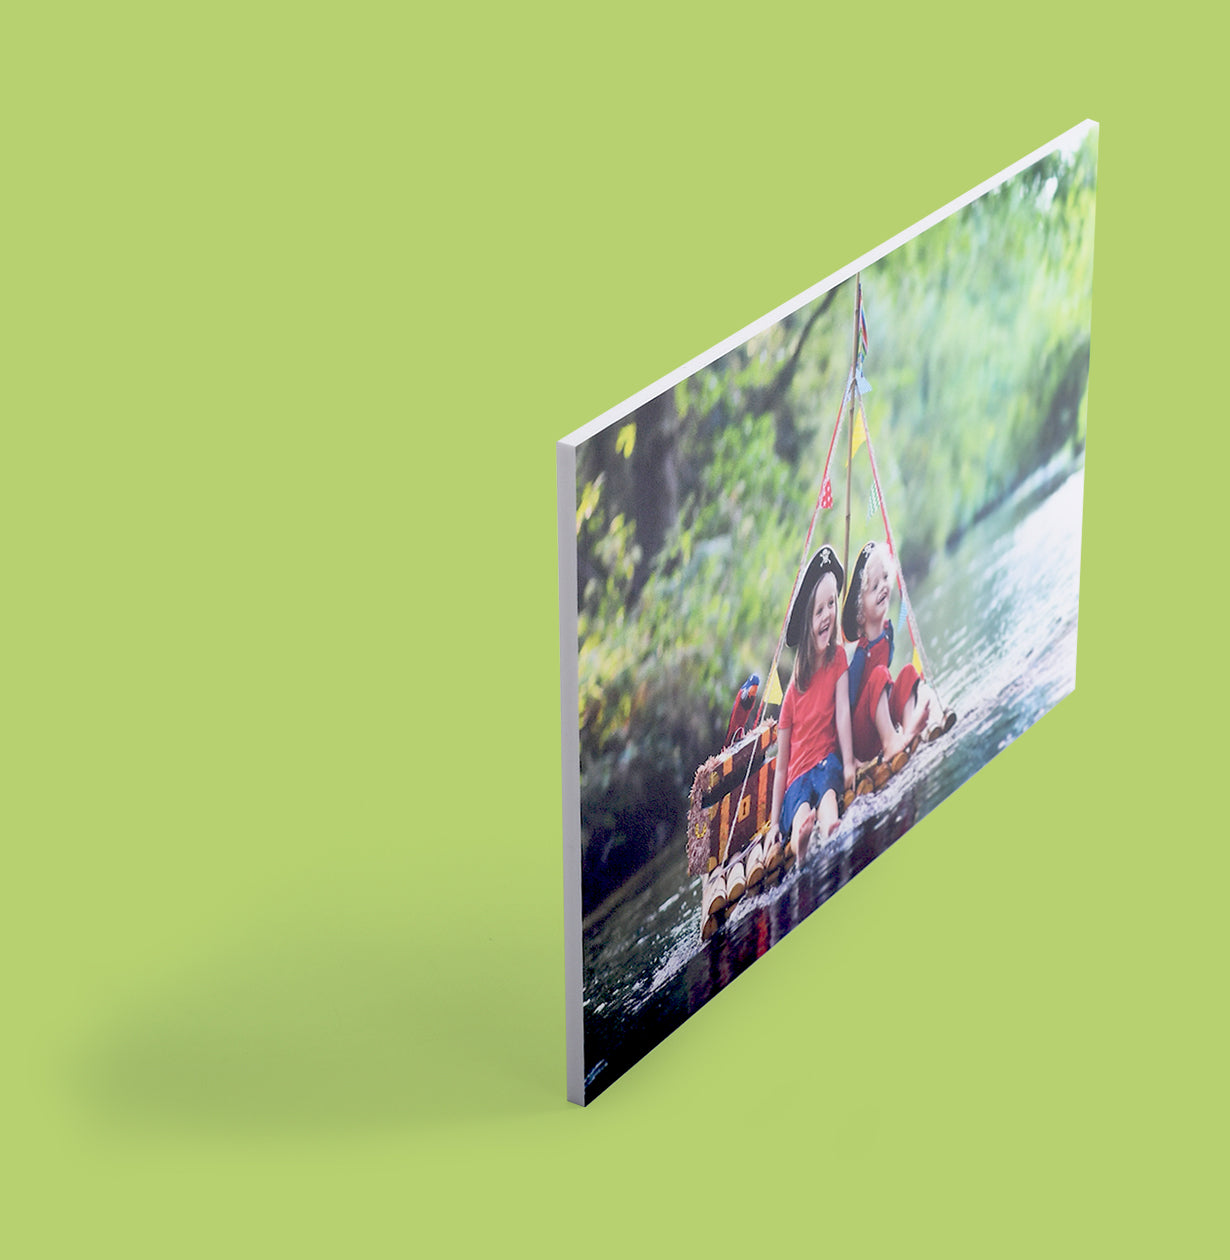 Photo Printed on a Posterjack Photoboard